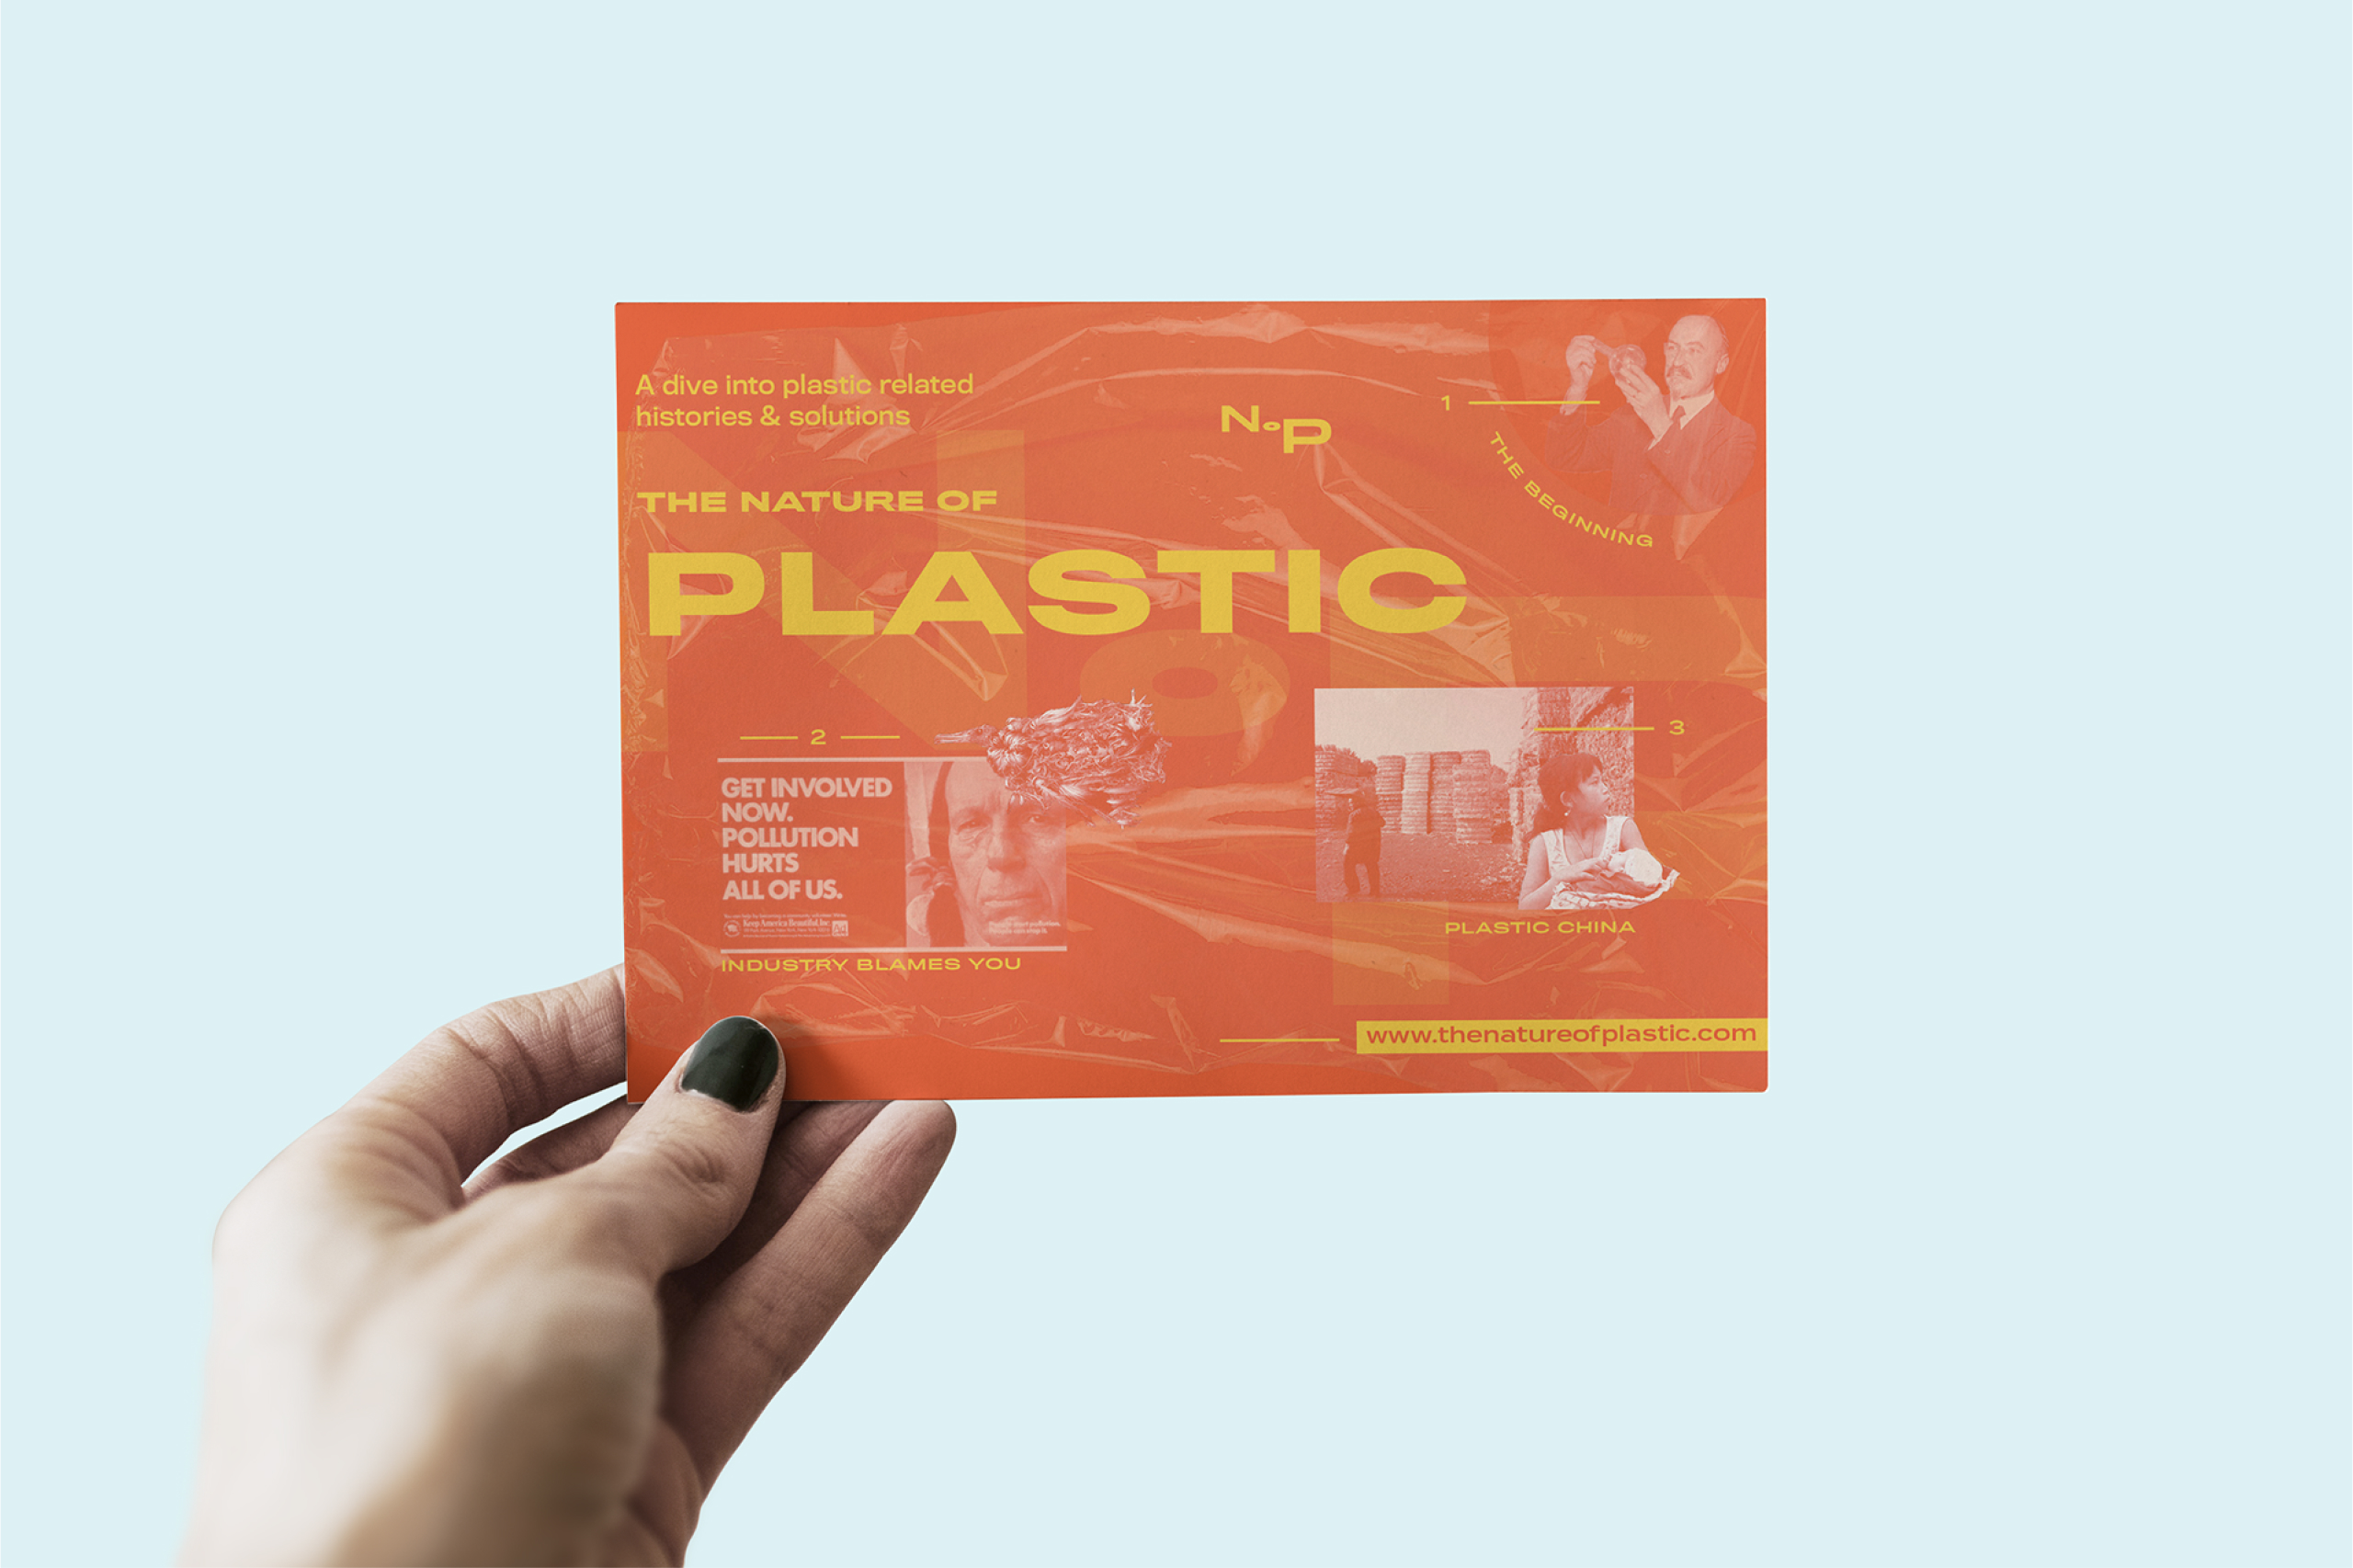 Hand holding up one of The Nature of Plastic's campaign postcards